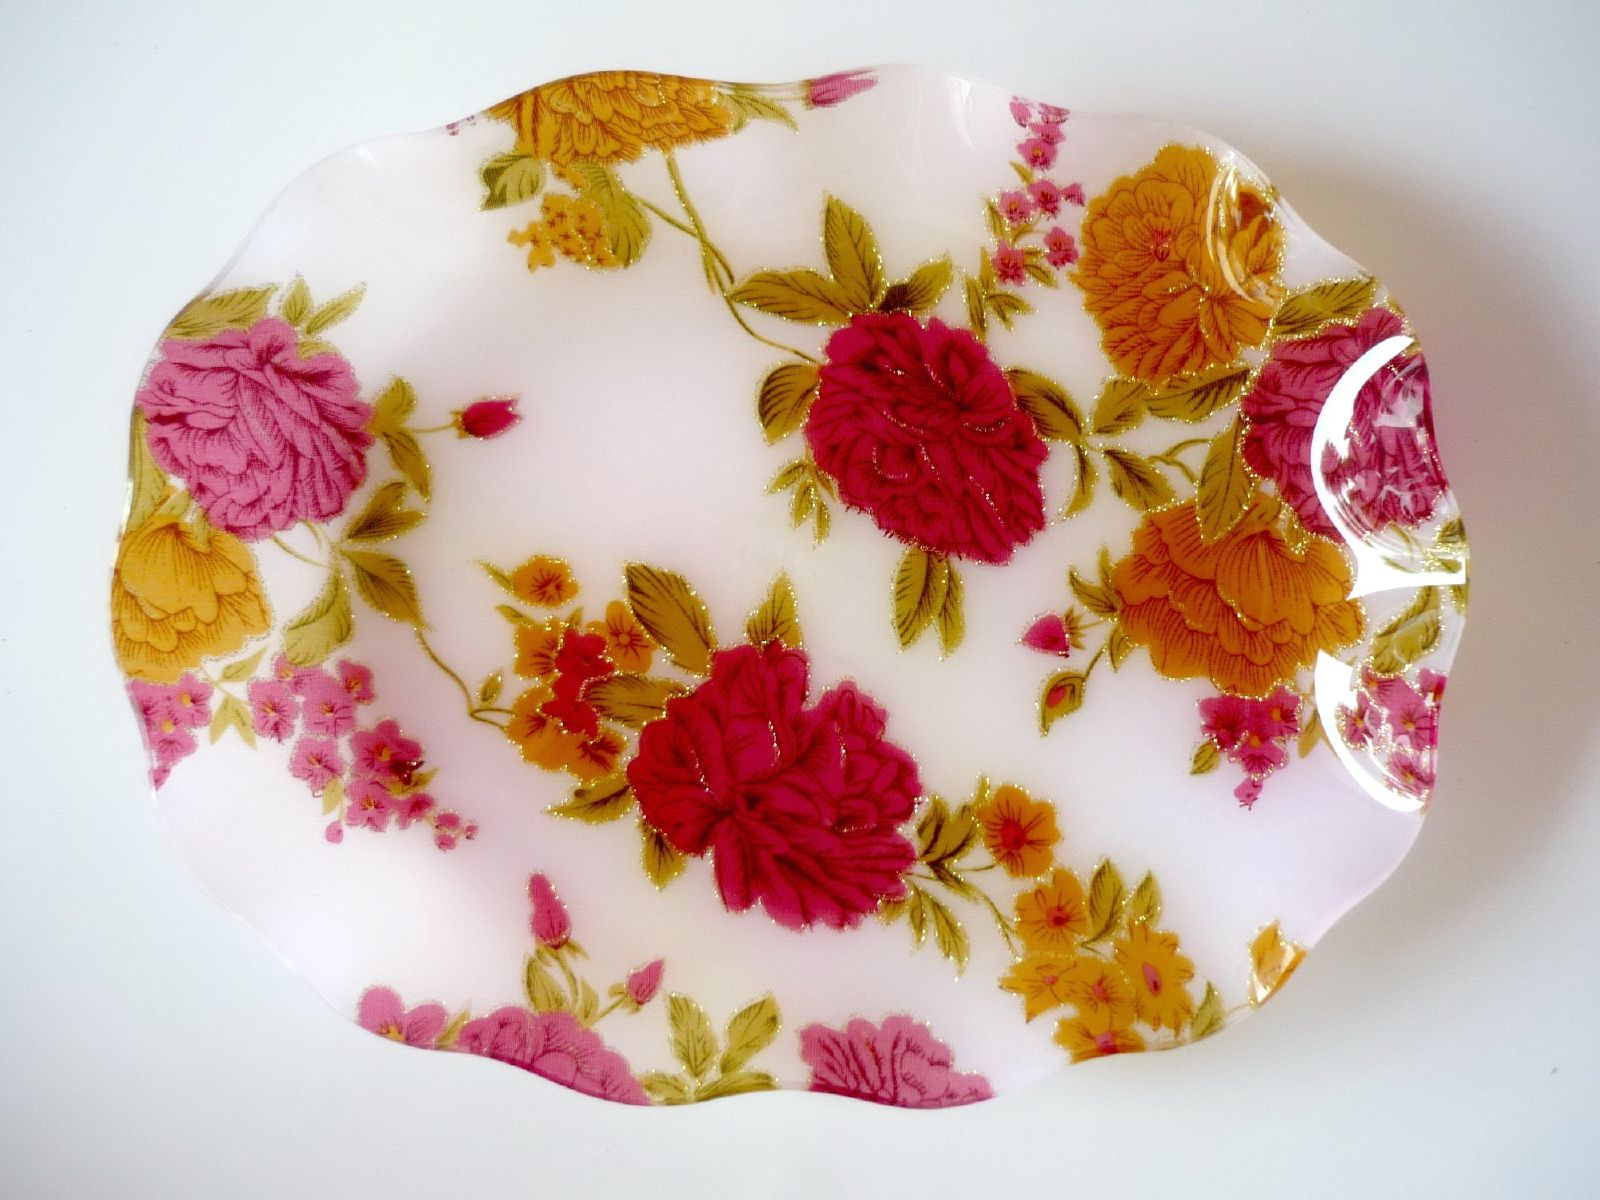 Tray, Flowers, Household, Item, Object, HQ Photo